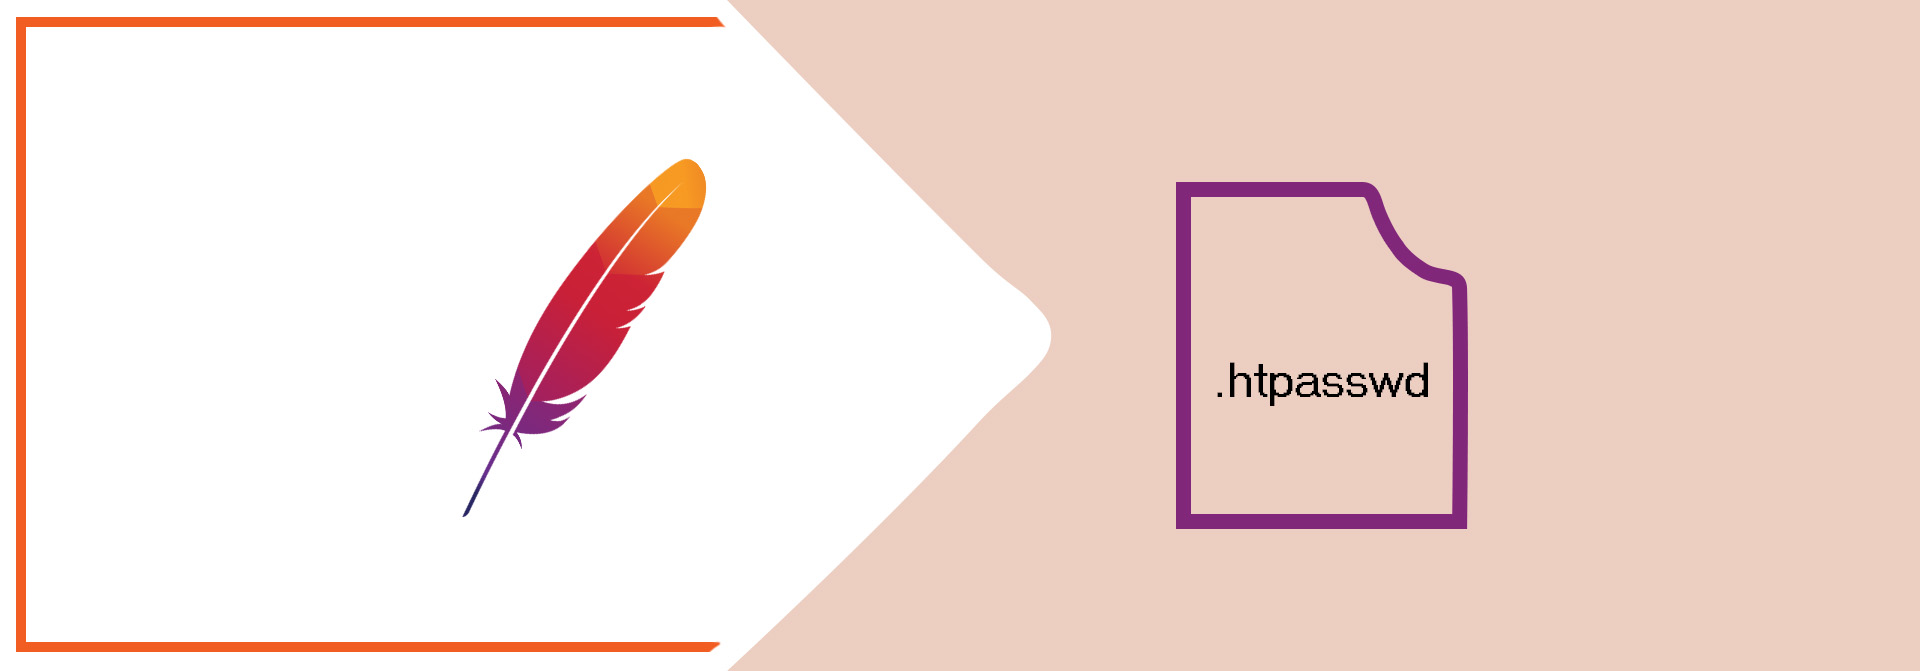 How To Use HTTP Basic Authentication With Apache Using htpasswd On Ubuntu 20.04 LTS